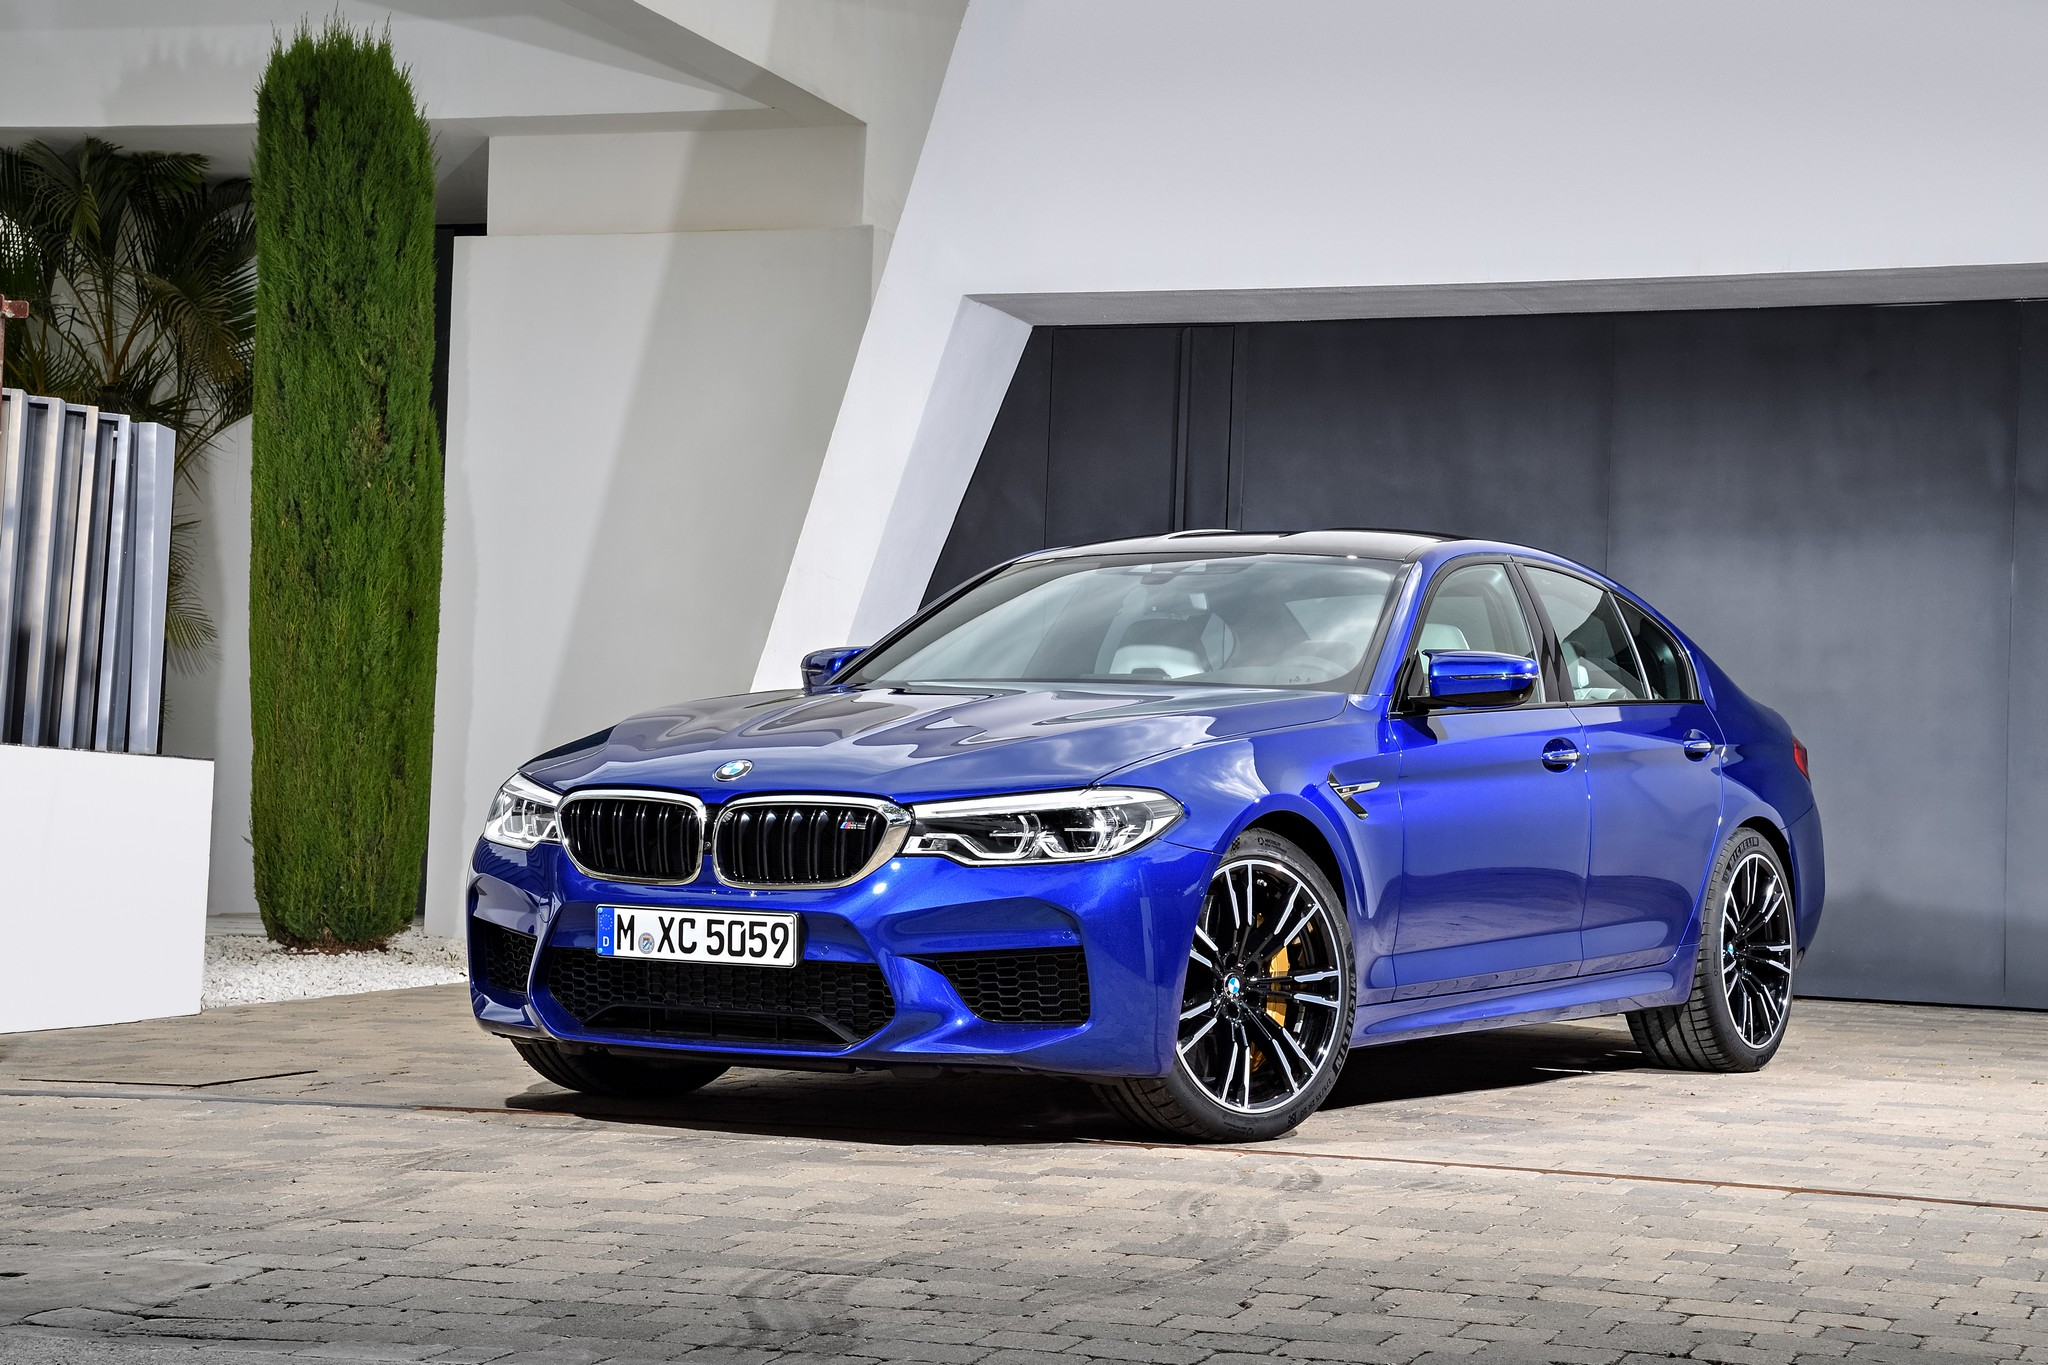 The new BMW M5 is here . . .